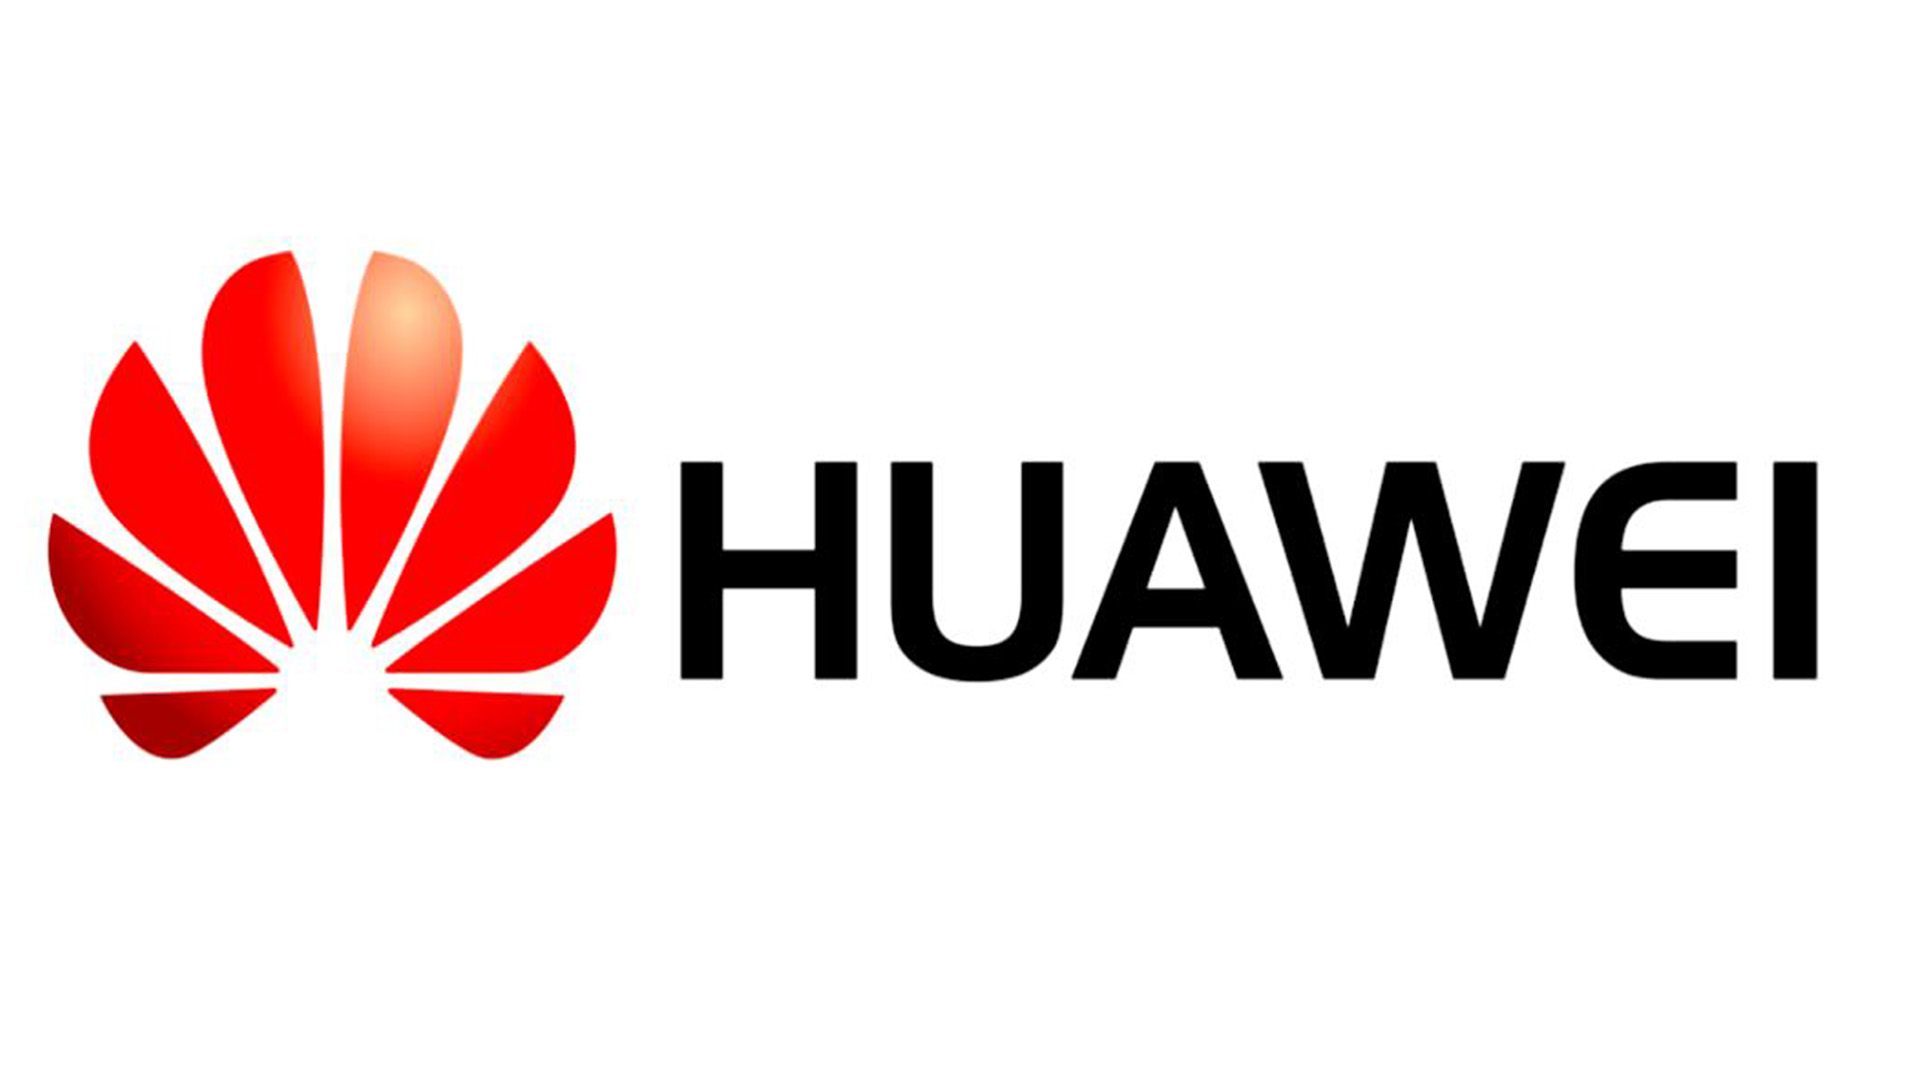 Qualcomm receives permission to sell 4G chips to Huawei